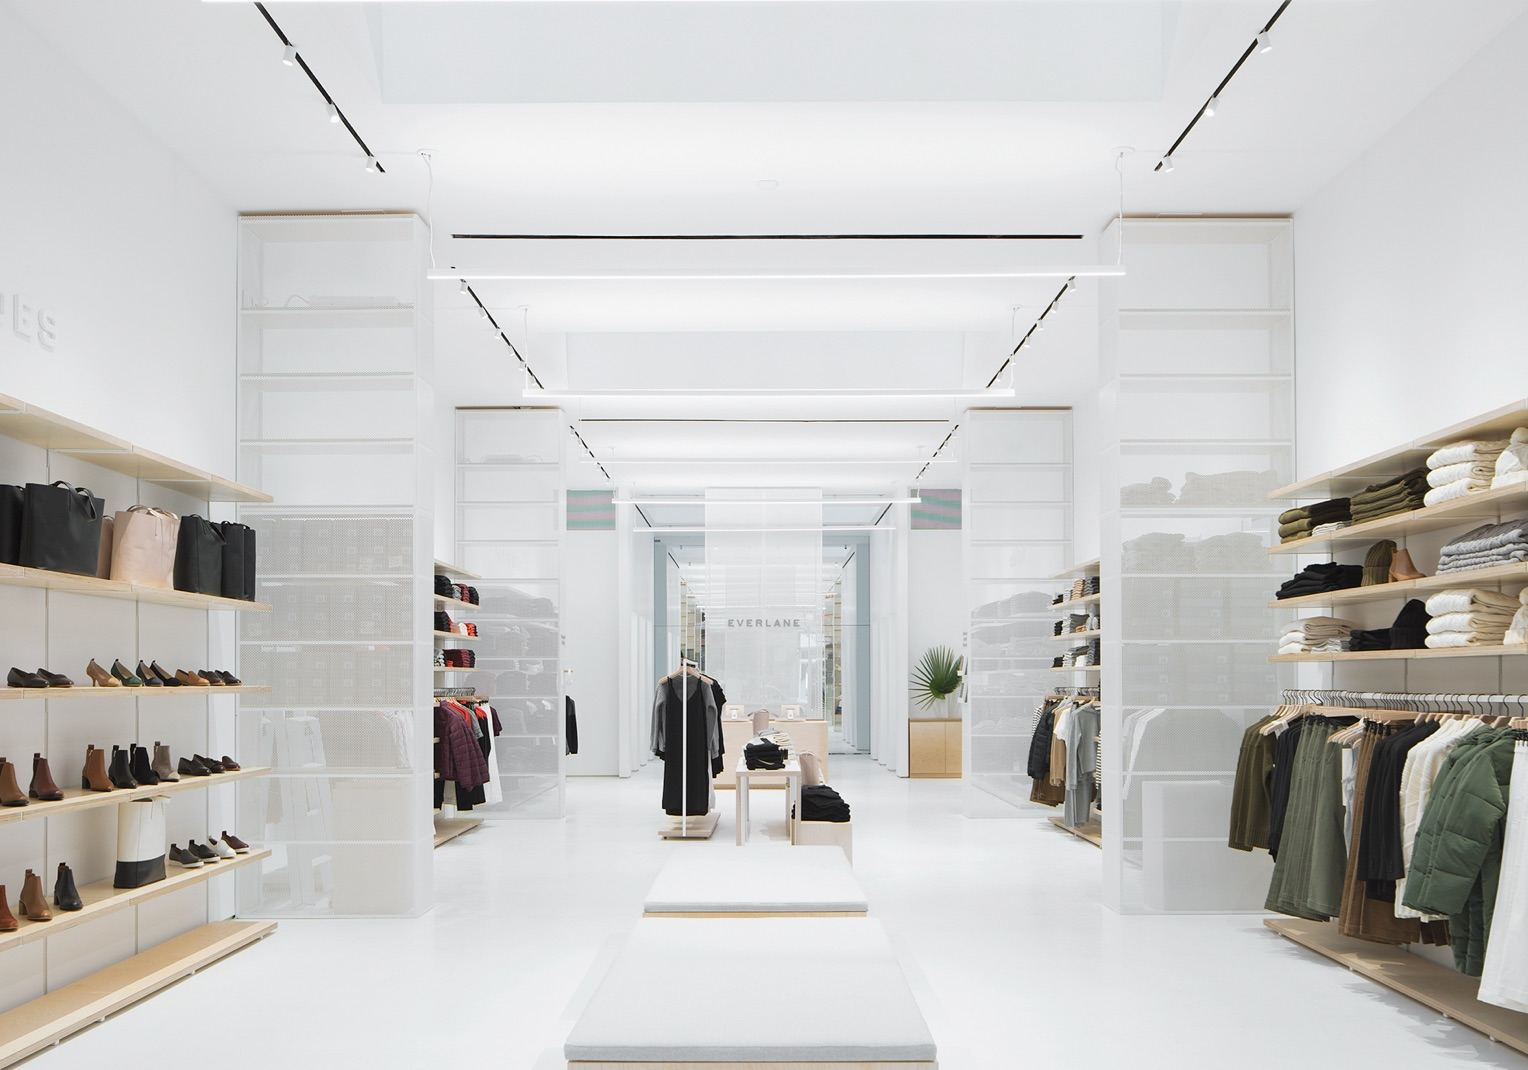 Inside view of Everlane's store. The room is mainly white with wooden System 1224 shelves along the walls displaying a variety of clothes.